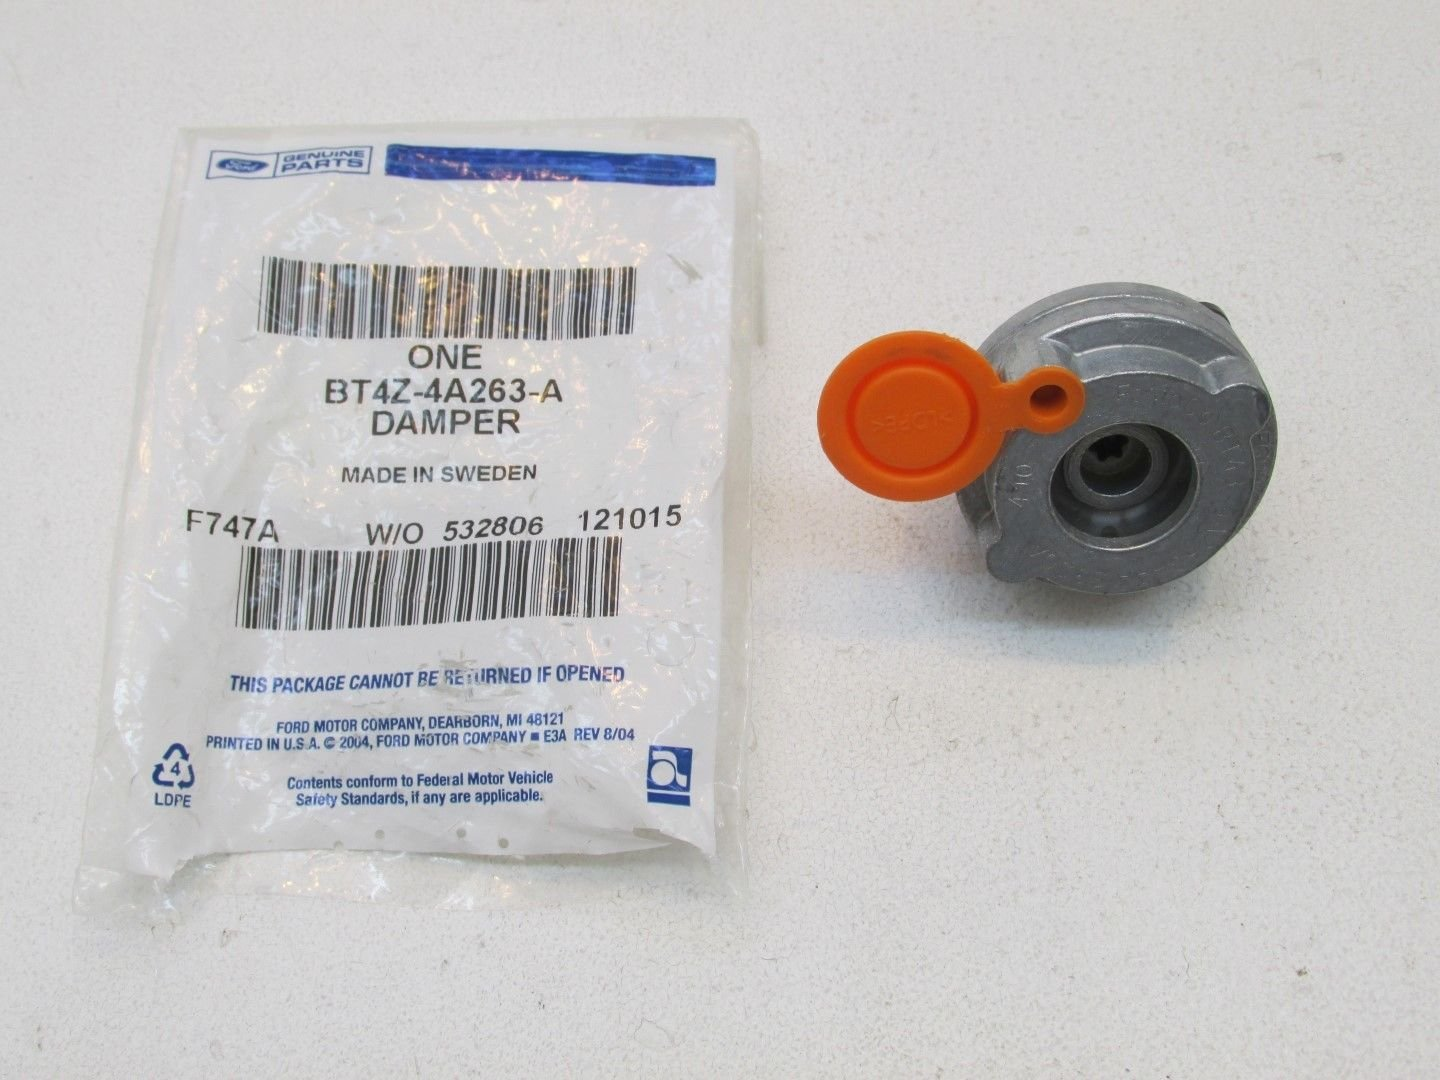 Ford BT4Z-4A263-A, Disc Brake Low Frequency Noise Damper